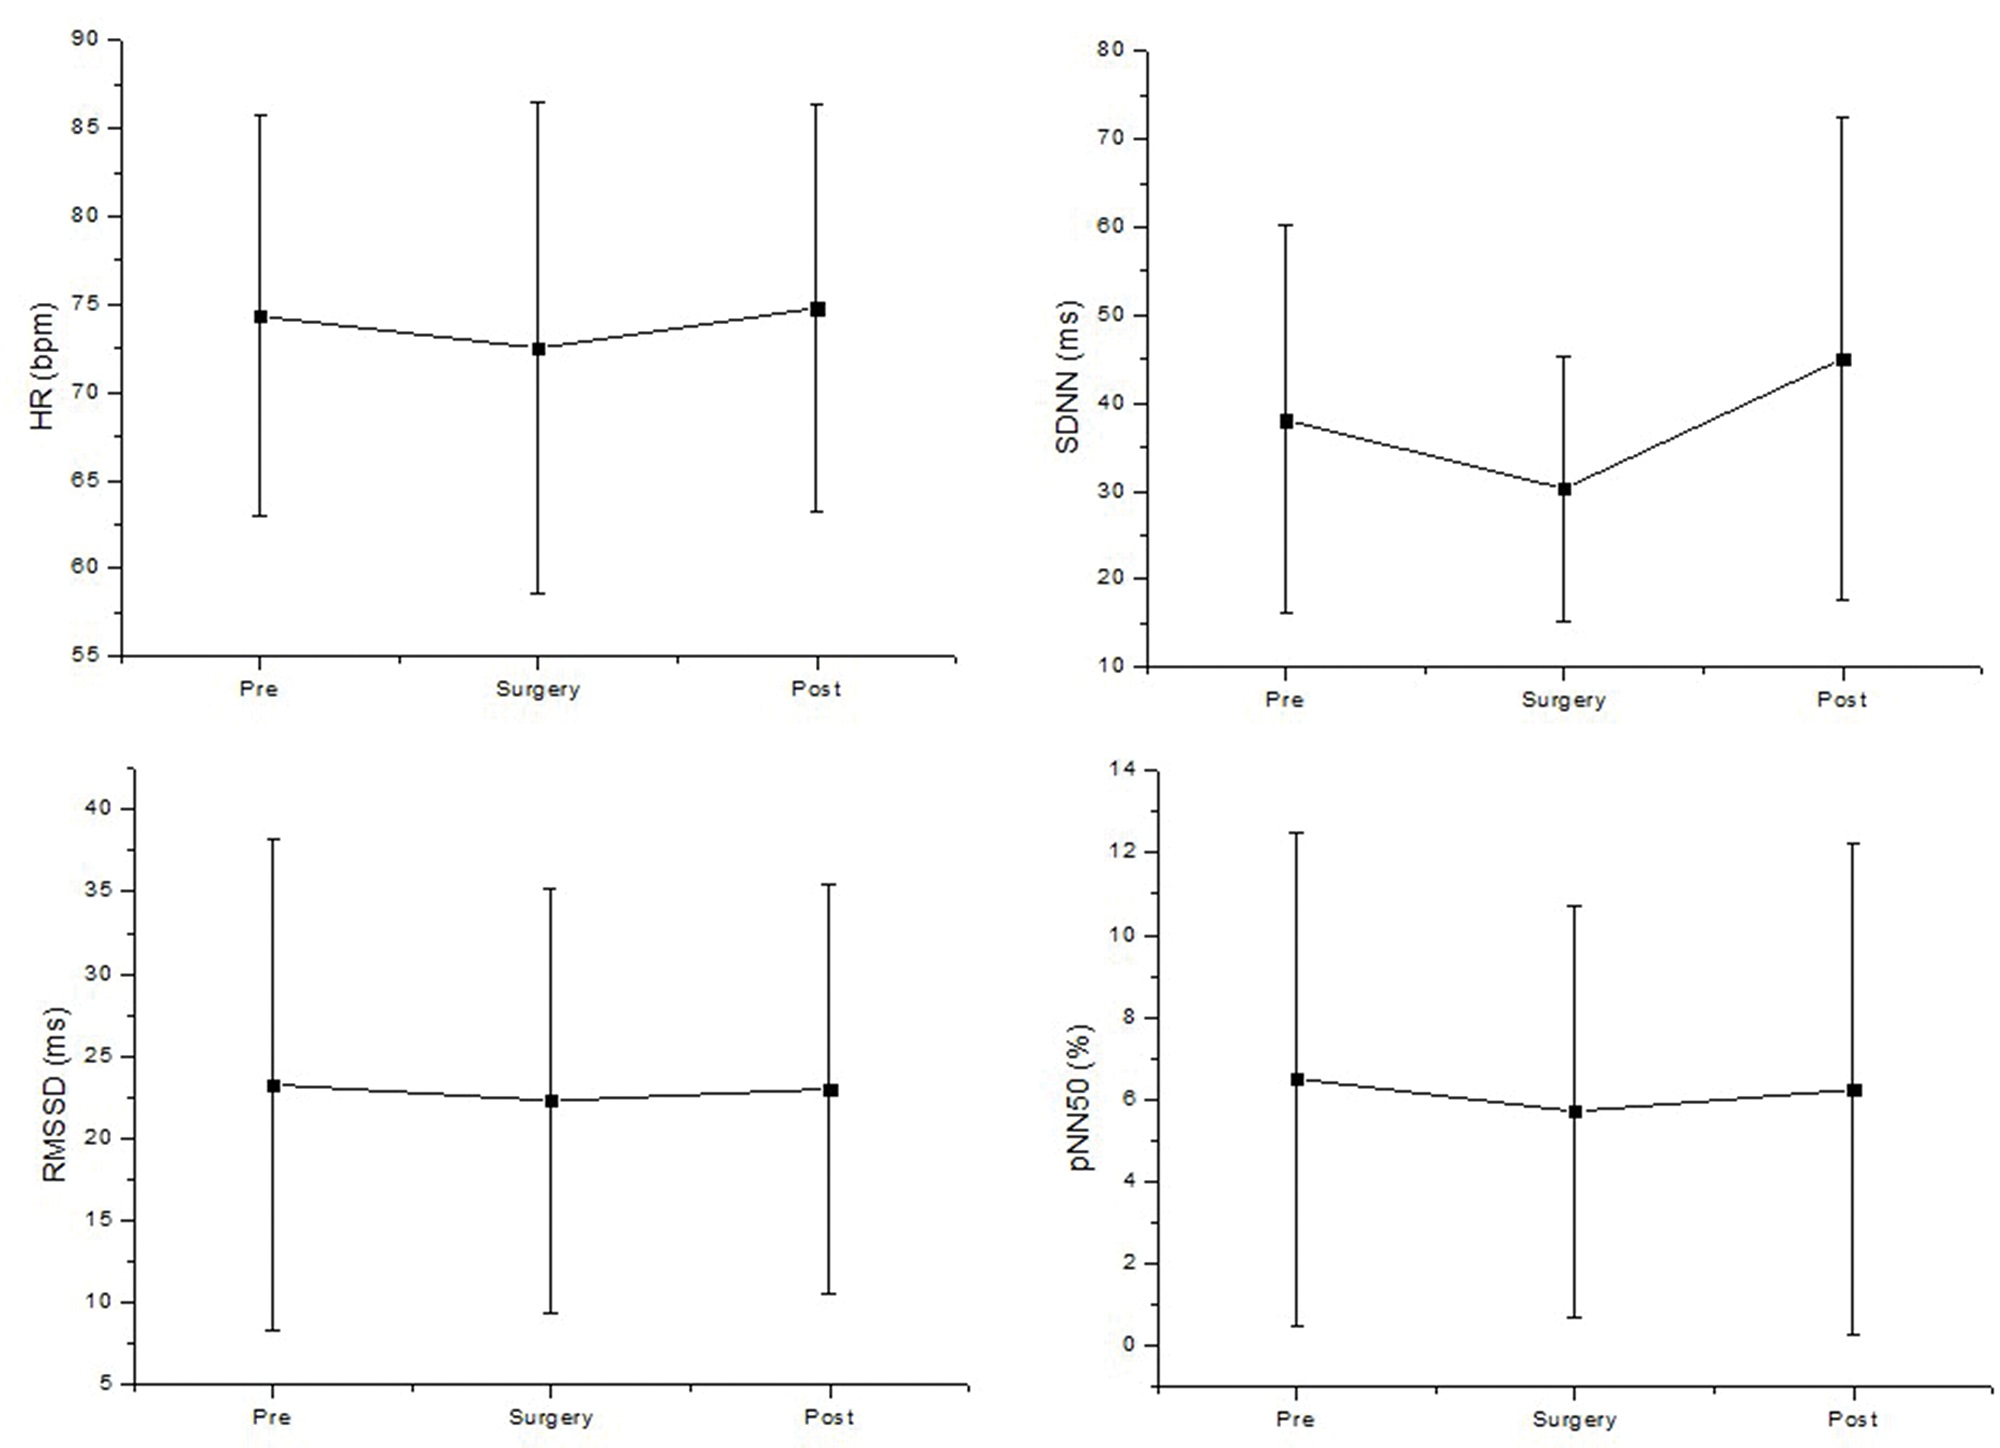 Time domain analysis of HRV before (pre), during surgery (surgery) and after surgery (post). pNN50: the percentage of adjacent RR intervals with a difference of duration greater than 50 ms; RMSSD: root-mean square of differences between adjacent normal RR intervals in a time interval; ms: milliseconds; SDNN: average standard deviation of normal RR intervals; HR: heart rate; ms: milliseconds.